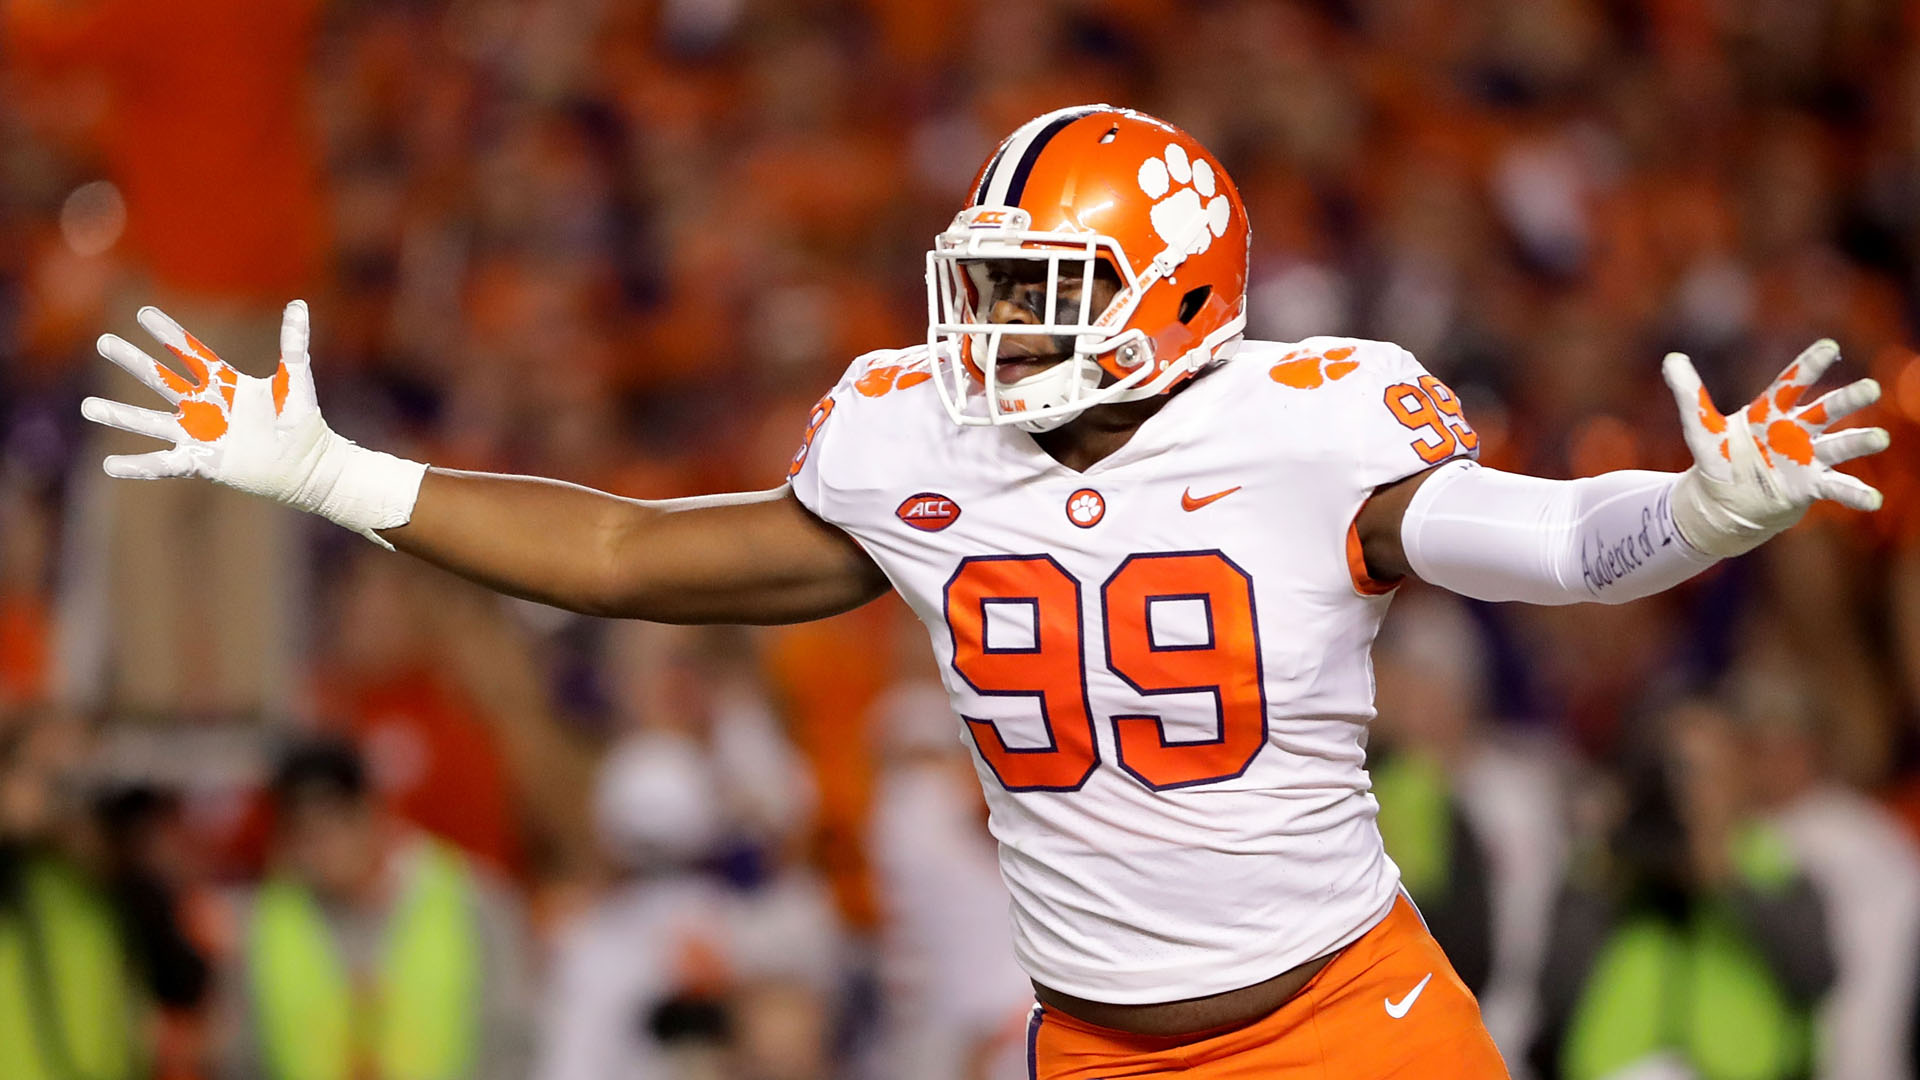 Christian Wilkins returning to Clemson for senior season